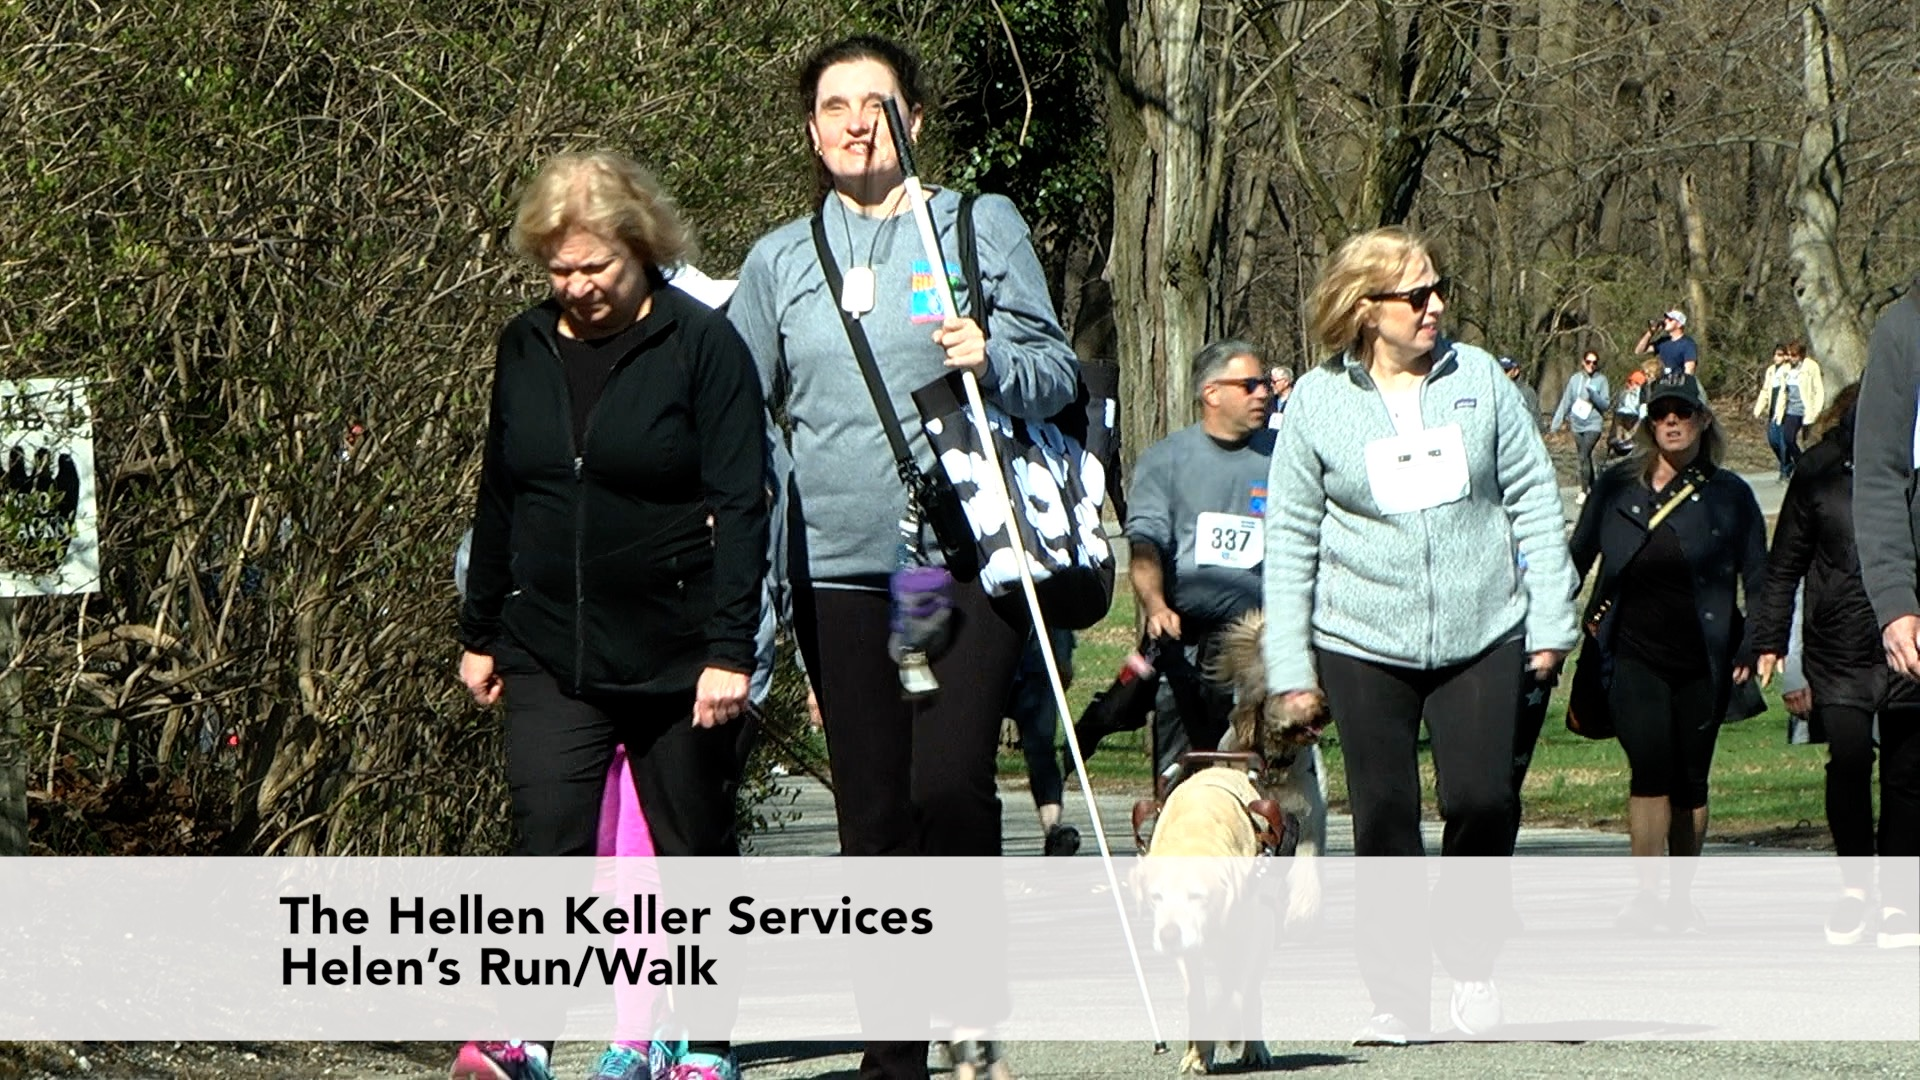 Hellen Keller Services Annual Helen's Run Walk Event